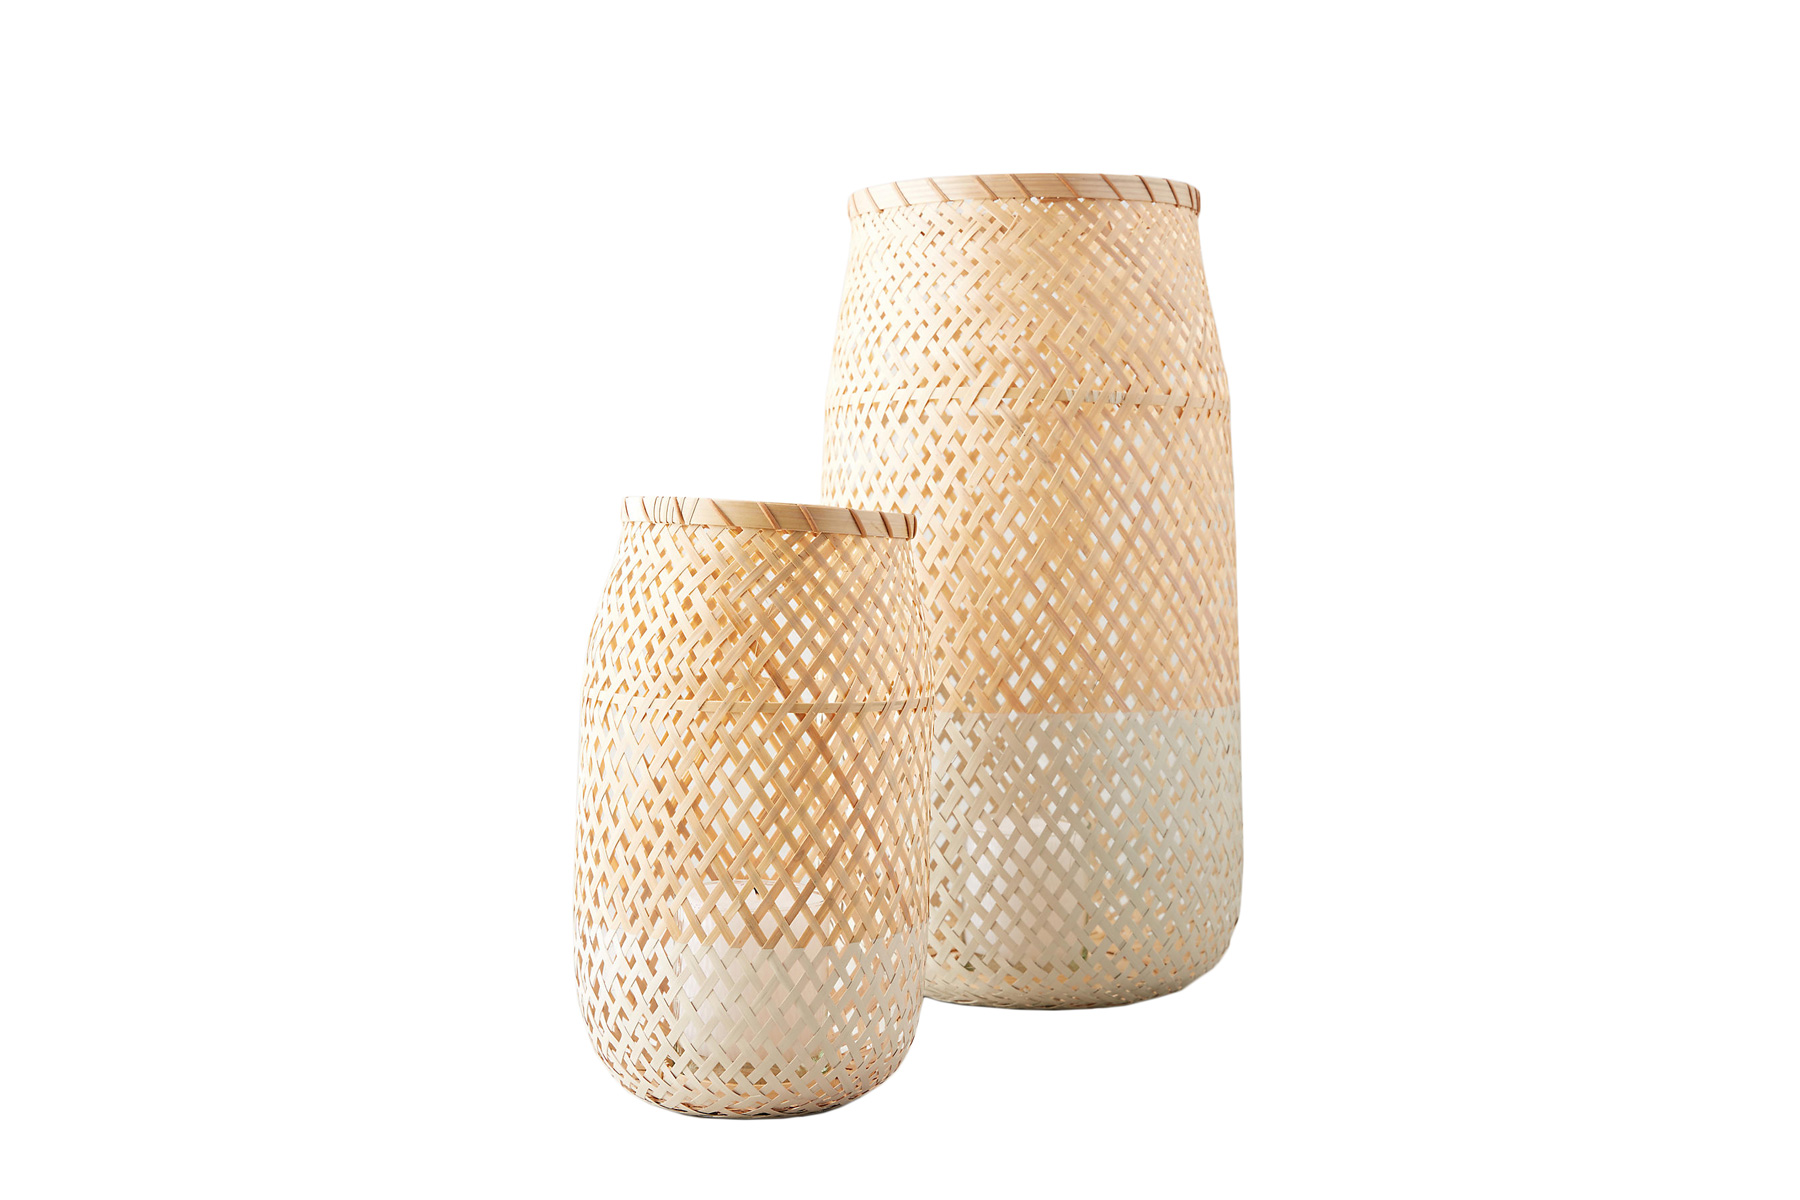 Anthropologie Small Wicker Candle Holder